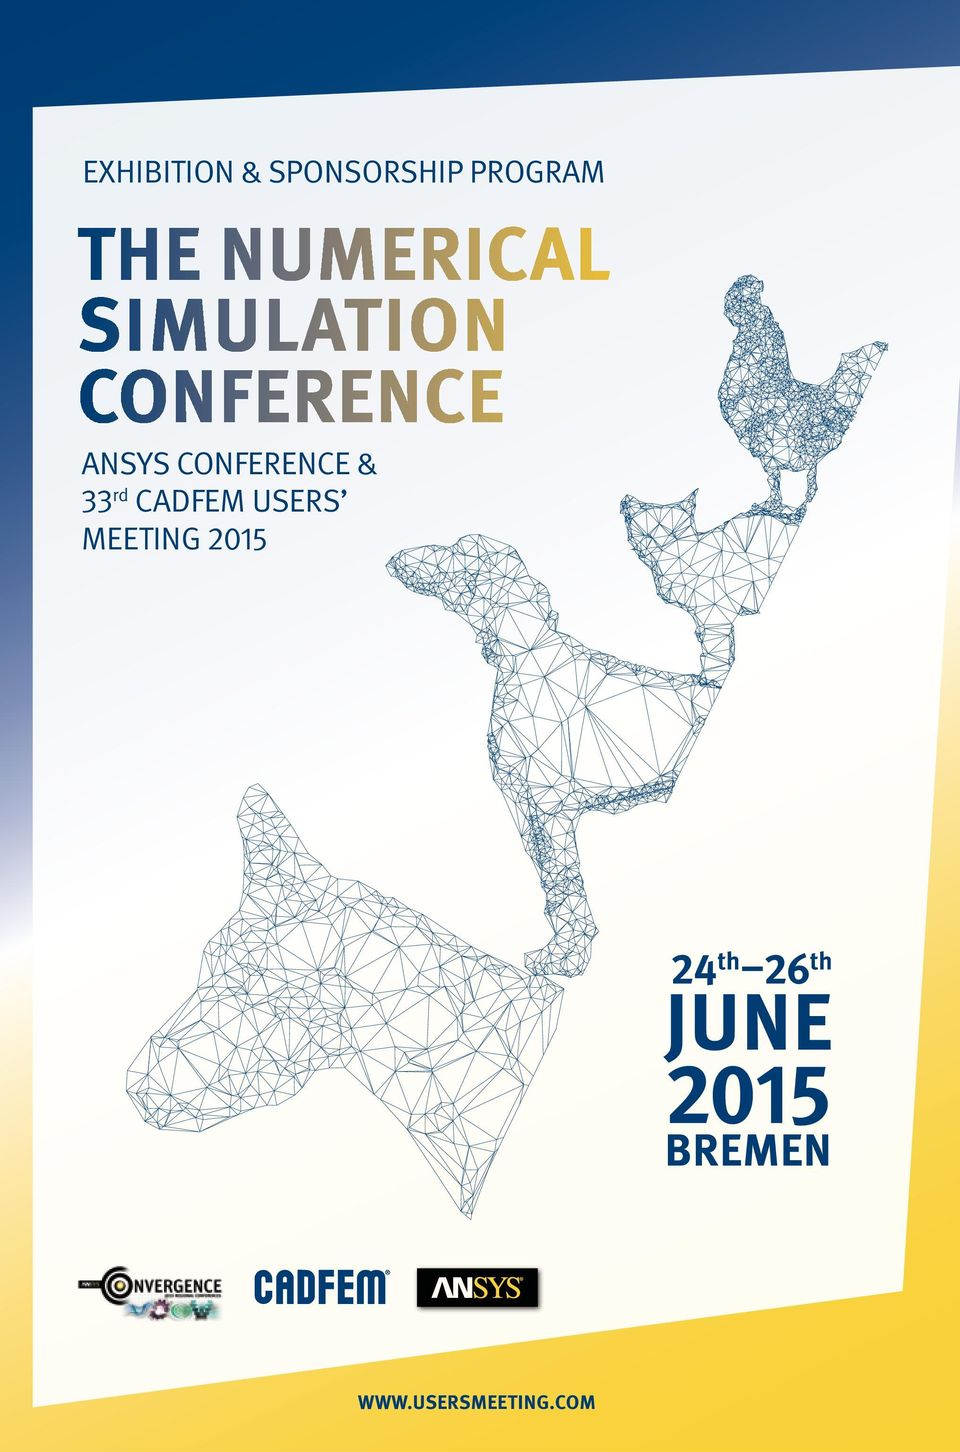 SIMULATION CONFERENCE ANSYS